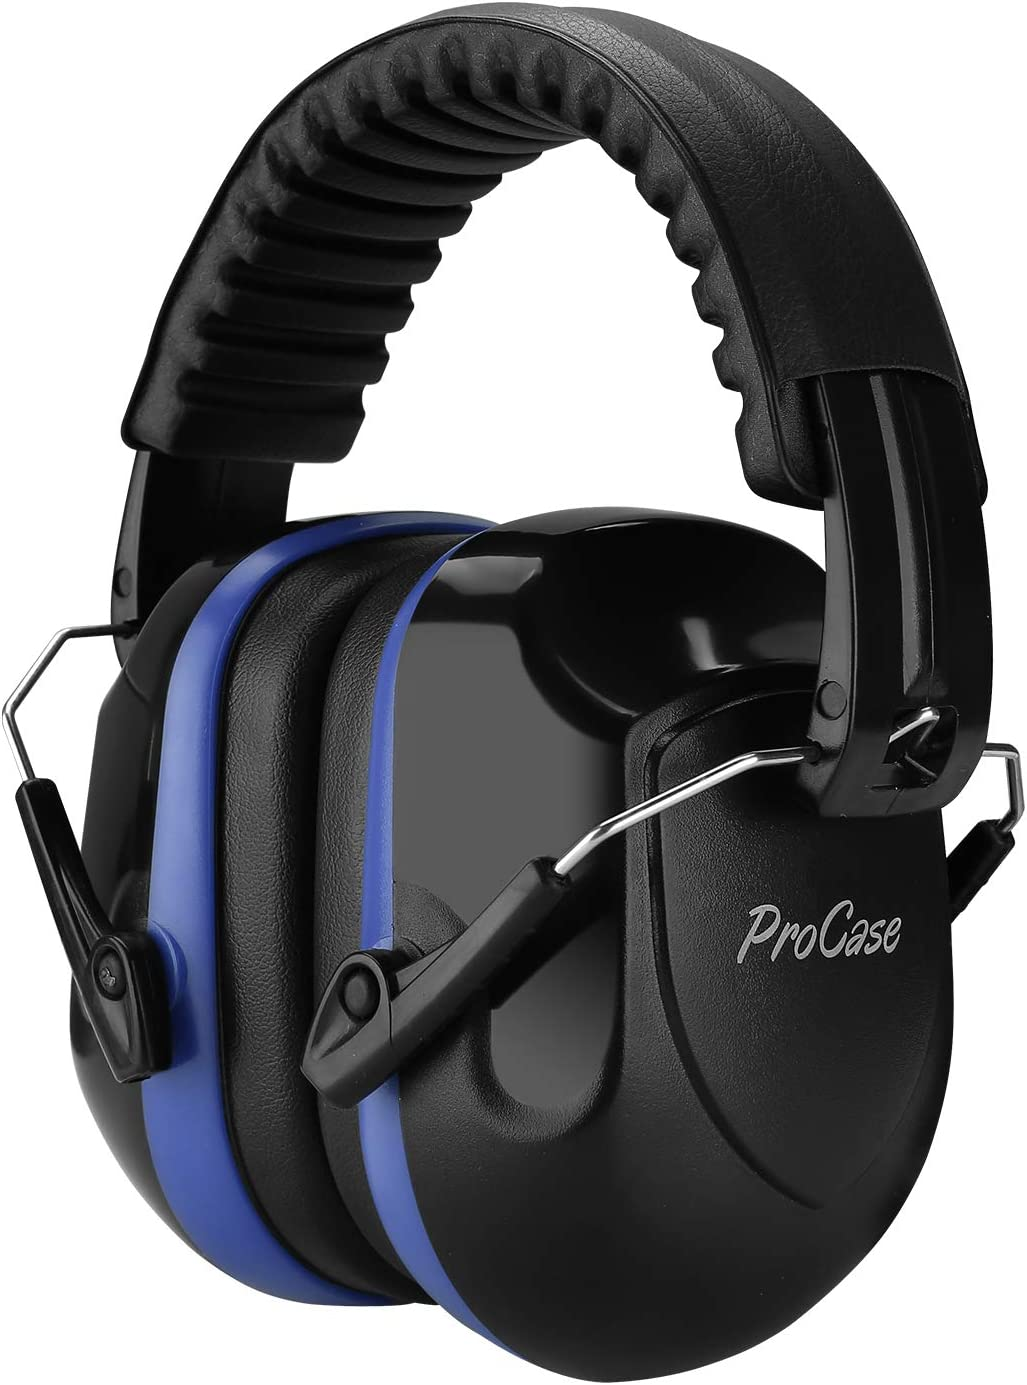 ProCase Noise Reduction Ear Muffs, NRR 28dB Shooters Hearing Protection Headphones Headset, Professional Noise Cancelling Ear Defenders for Construction Work Shooting Range Hunting -Blue